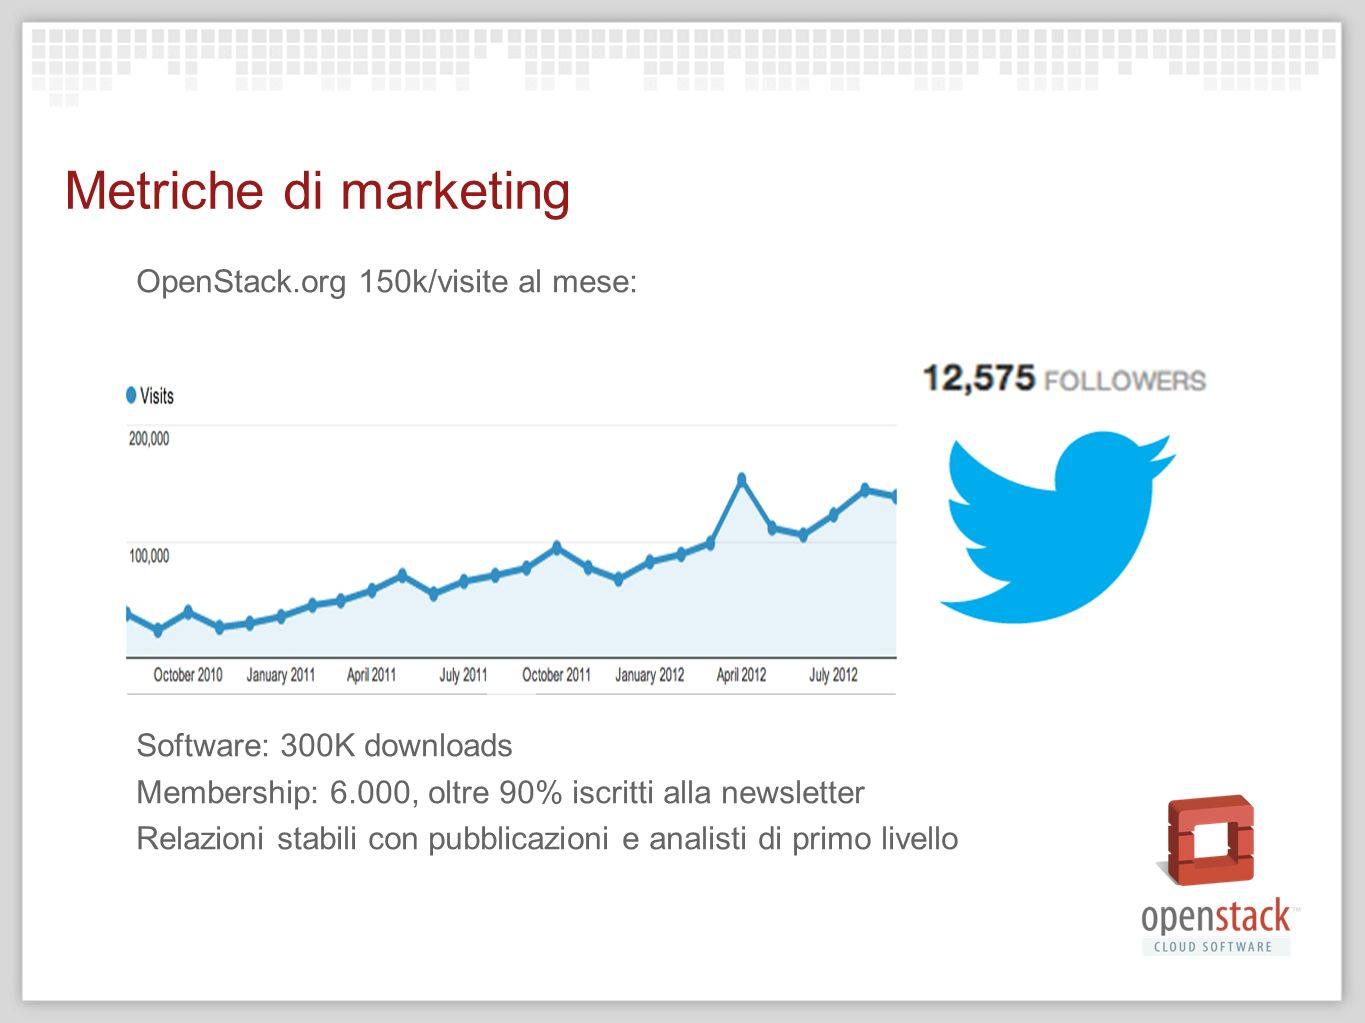 Metriche di marketing OpenStack.org 150k/visite al mese: